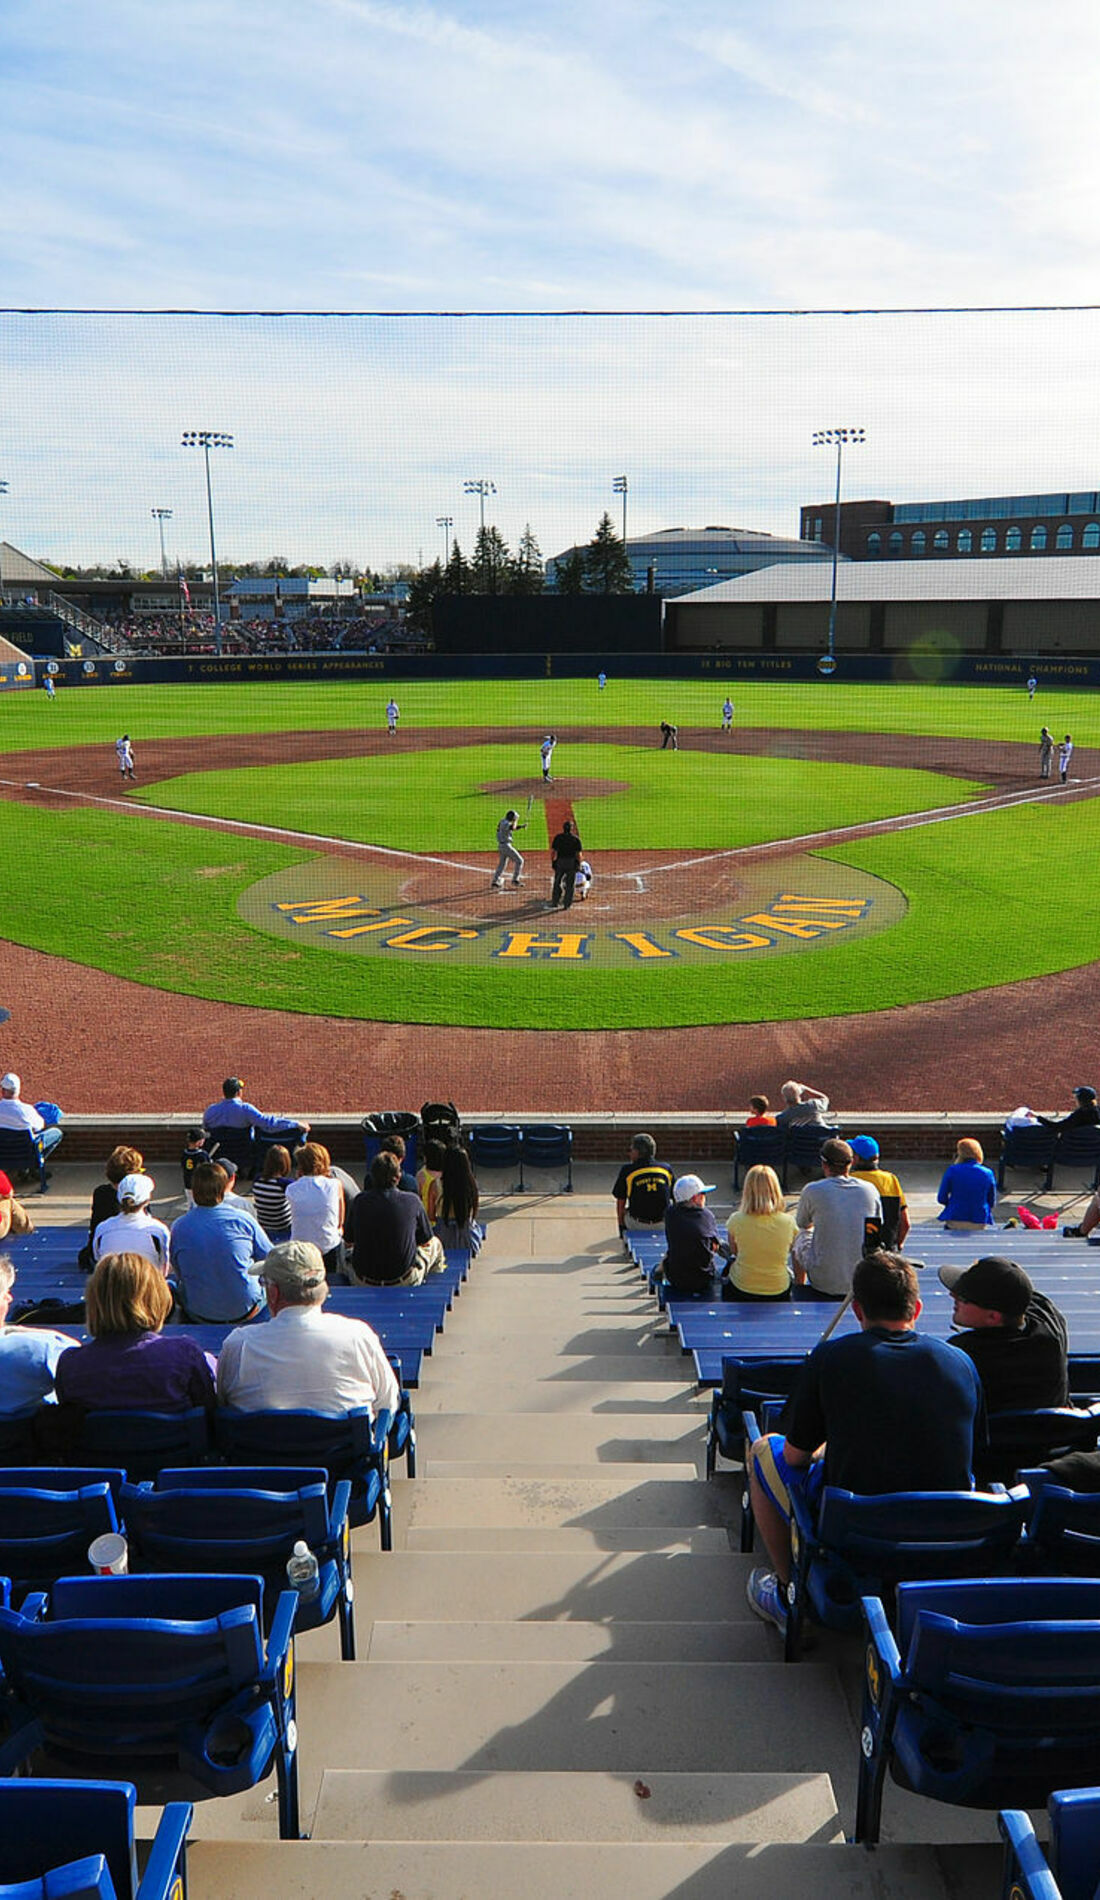 A Michigan Wolverines Baseball live event